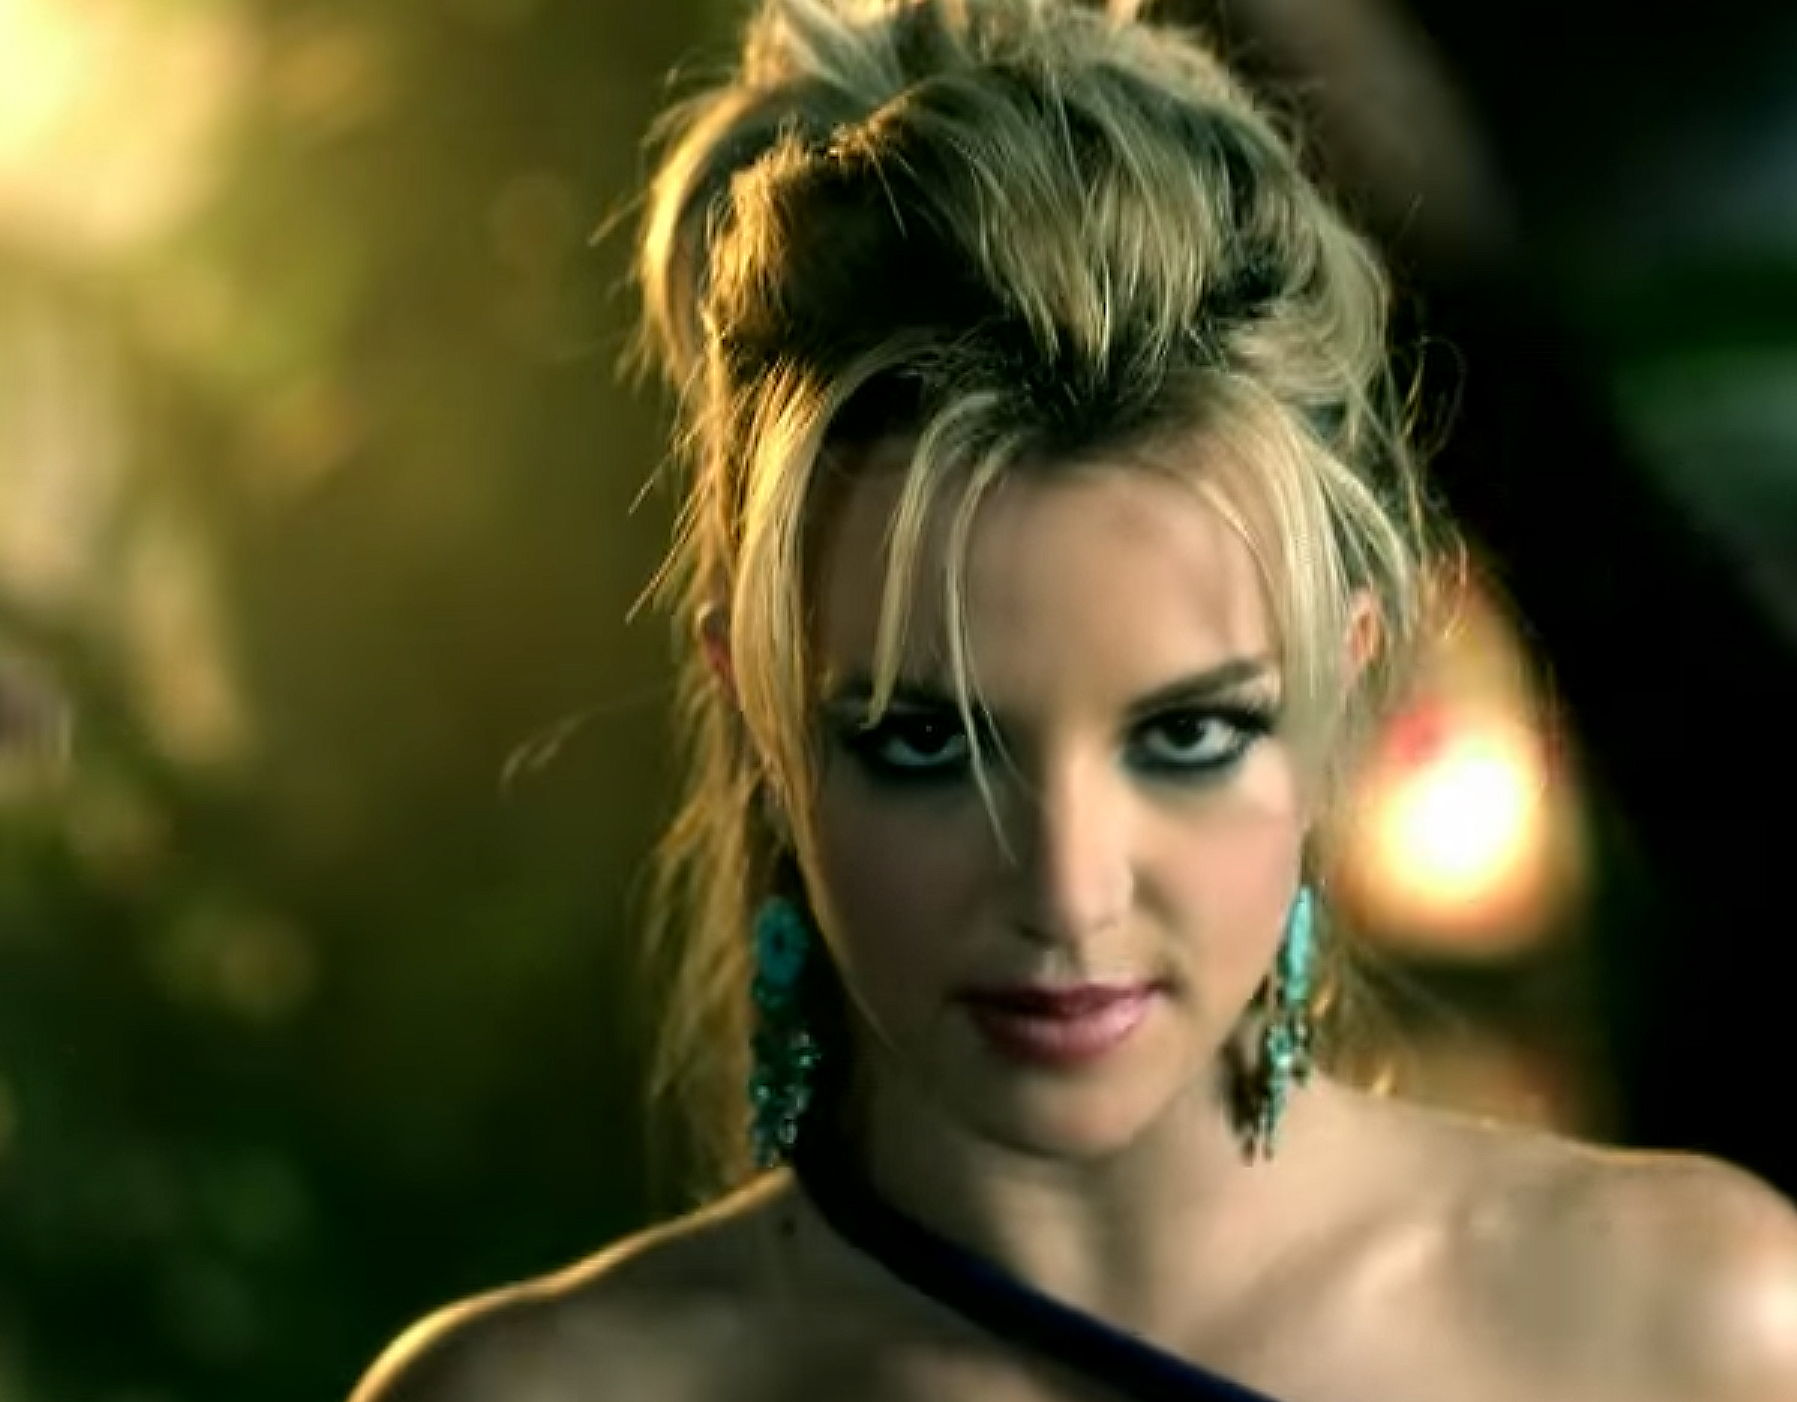 LORENA: Best britney spears music videos images on pinterest britney